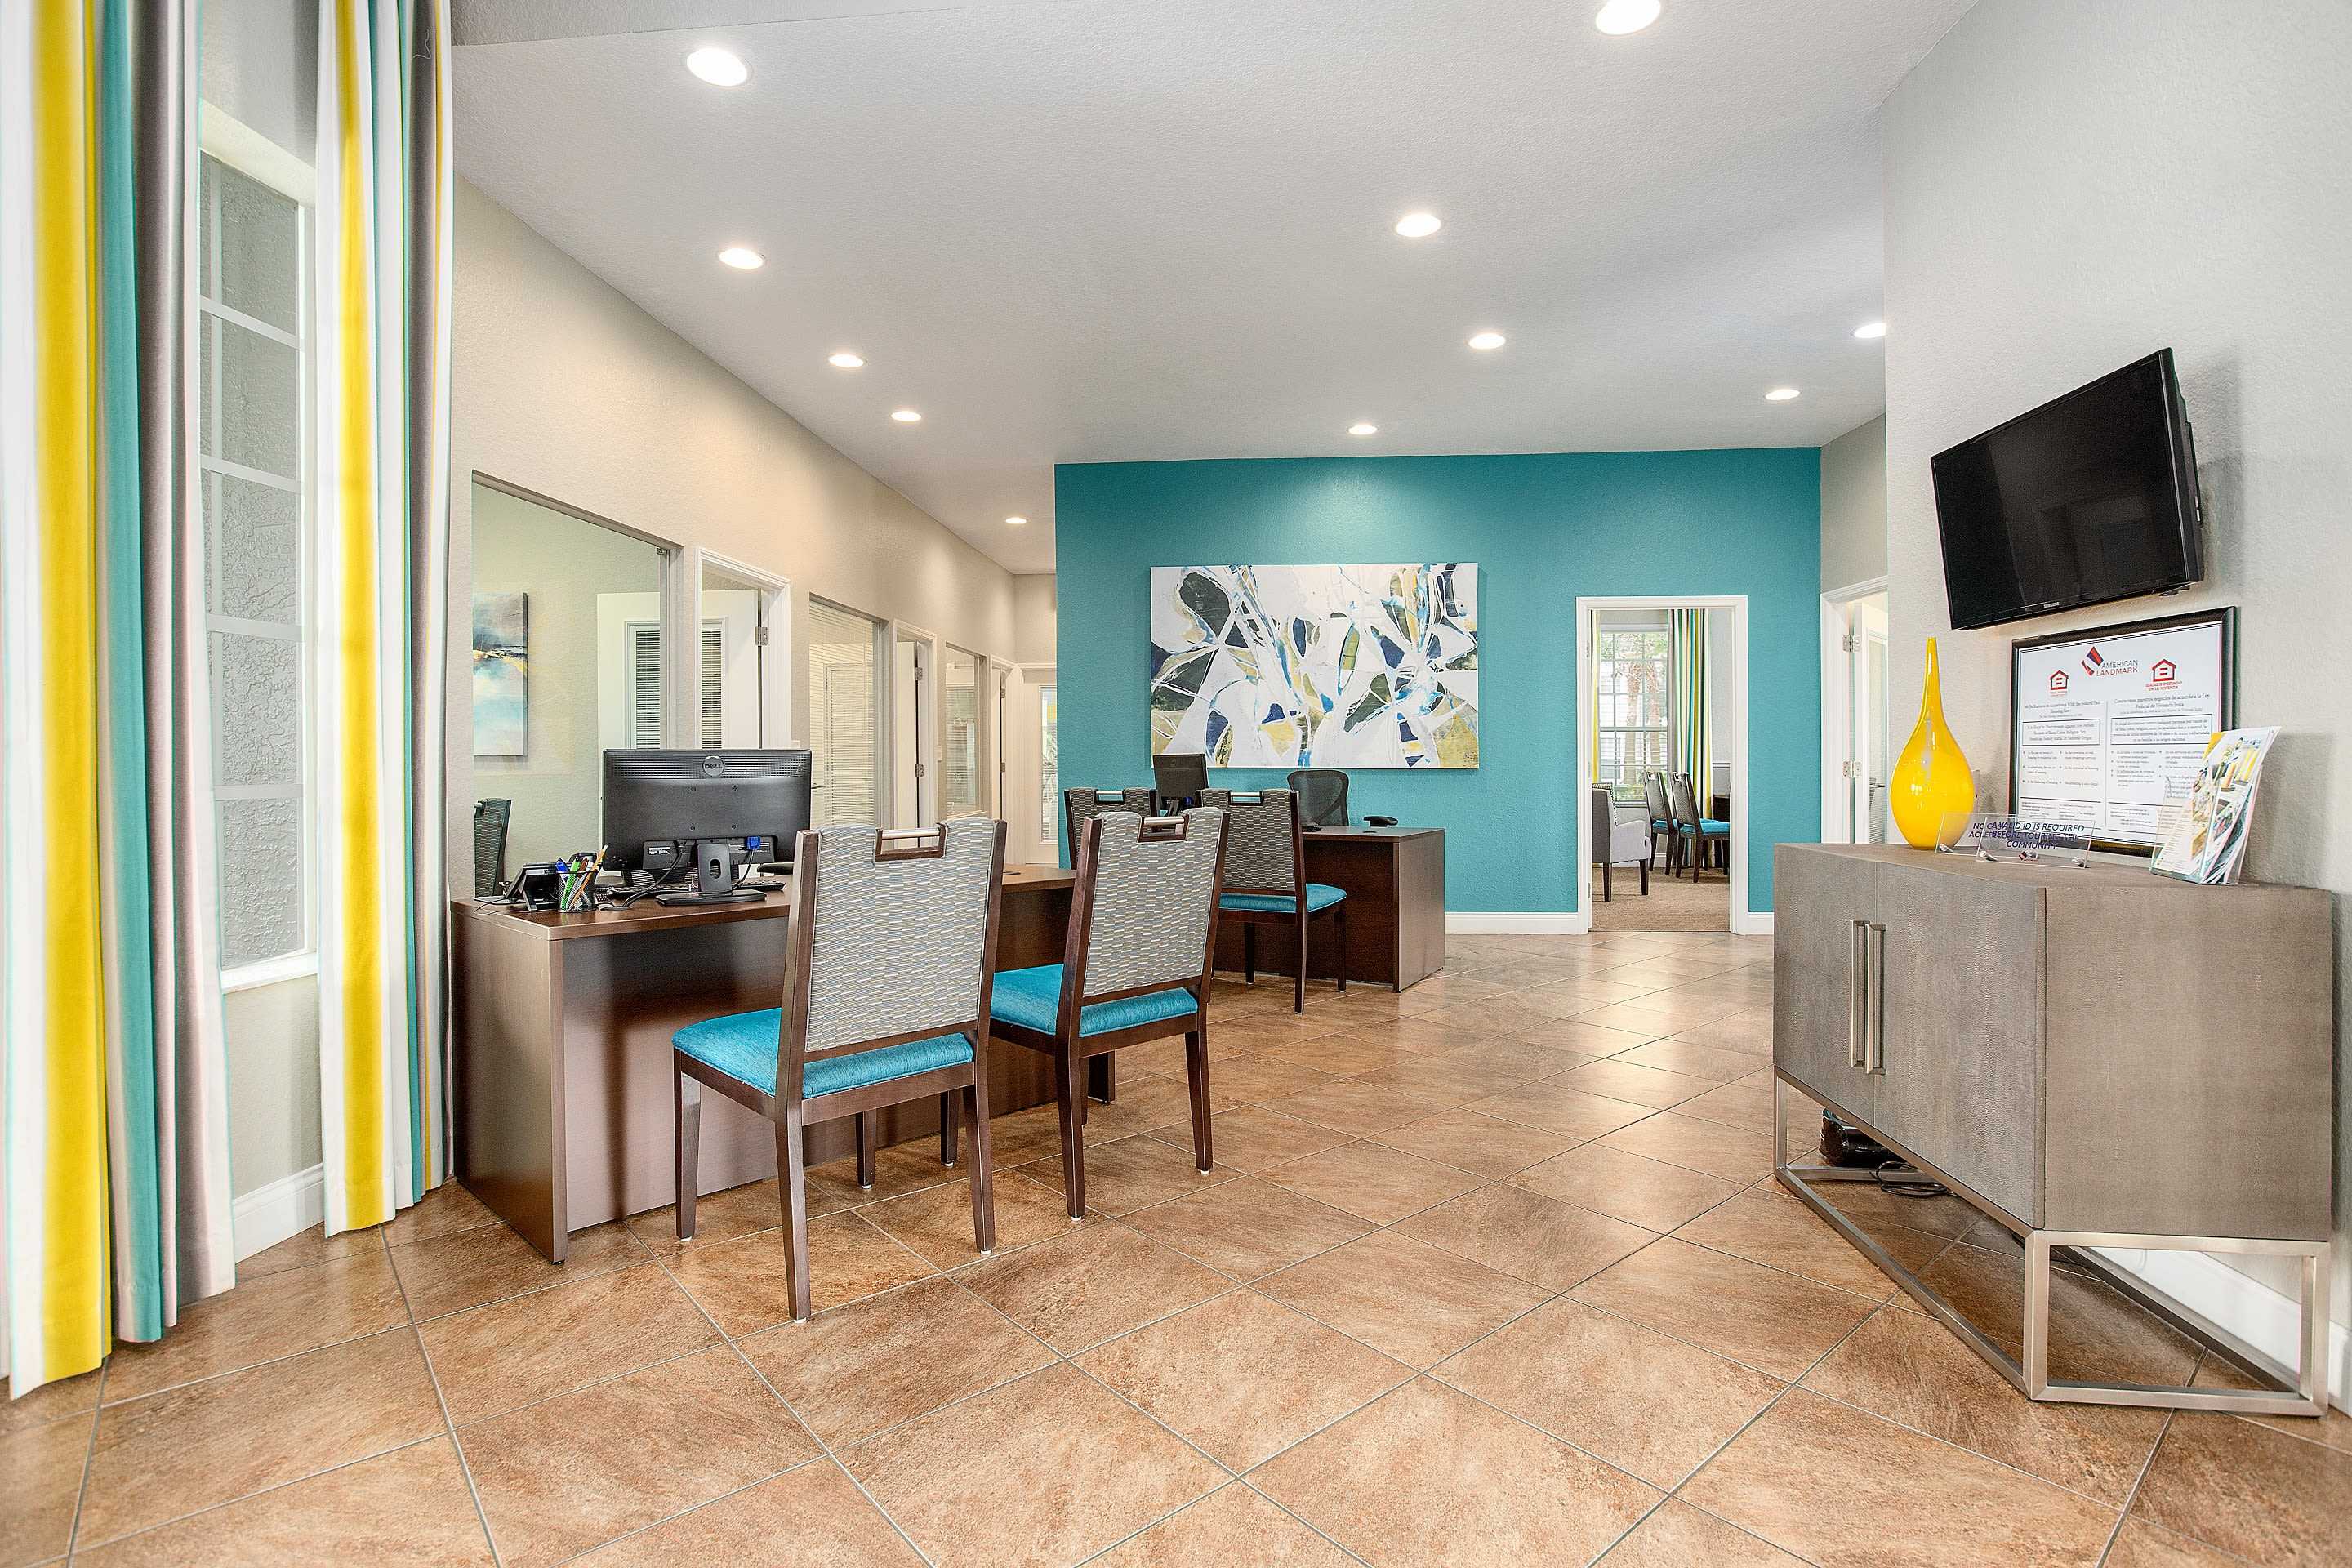 renovated clubhouse at The Avenue in Ocoee